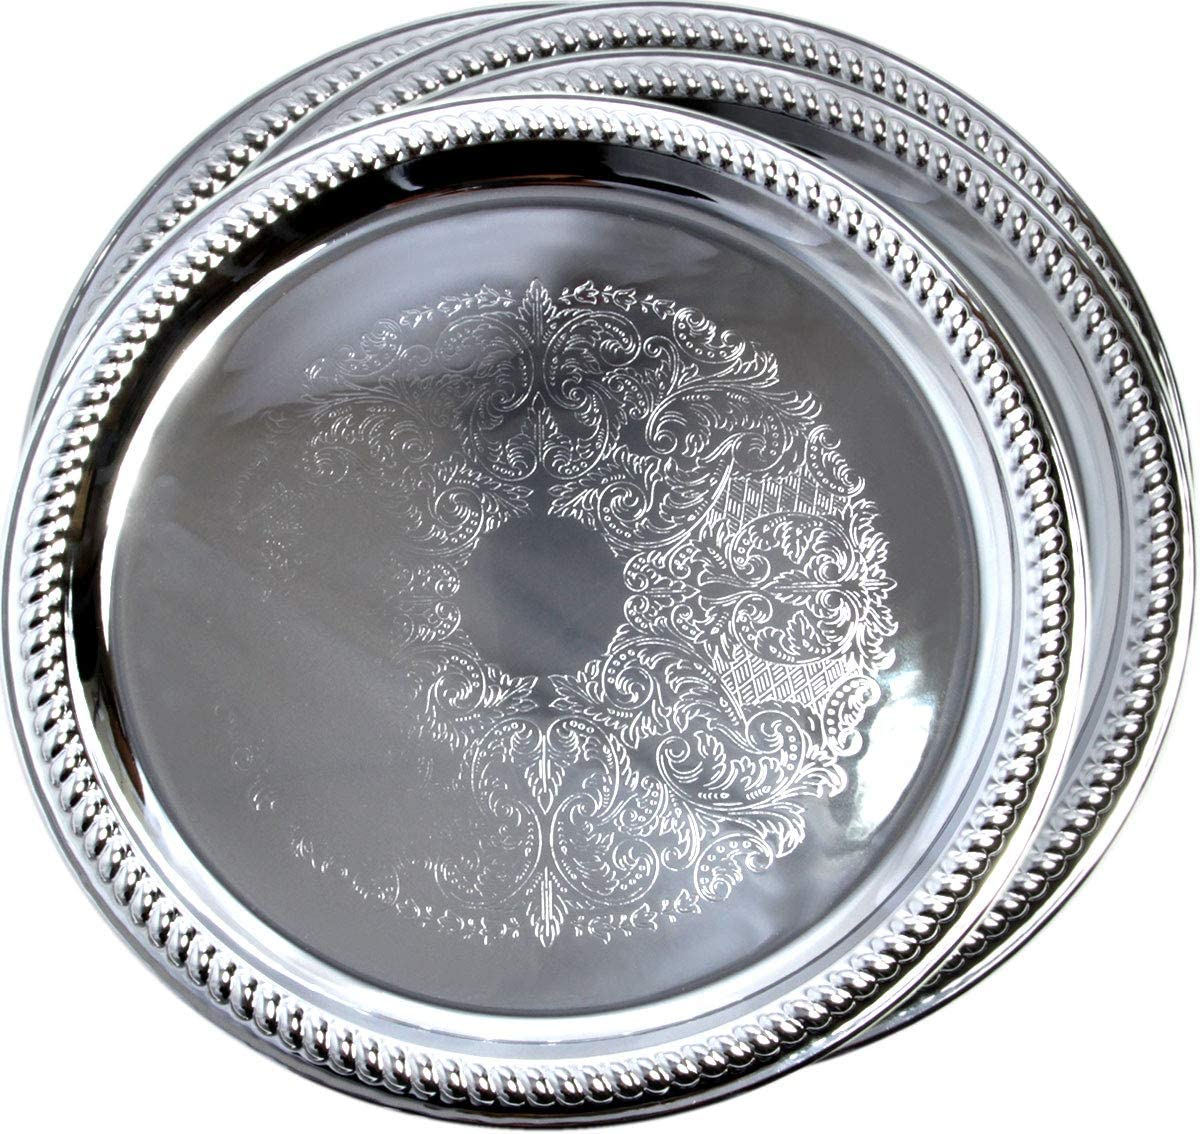 Maro Megastore (Pack of 4) 14-Inch Traditional Round Floral Pattern Engraved Catering Chrome Plated Serving Tray Mirror Plate Silver Metal Platter Tableware Wedding Birthday (Extra Large) T139-14-4pk